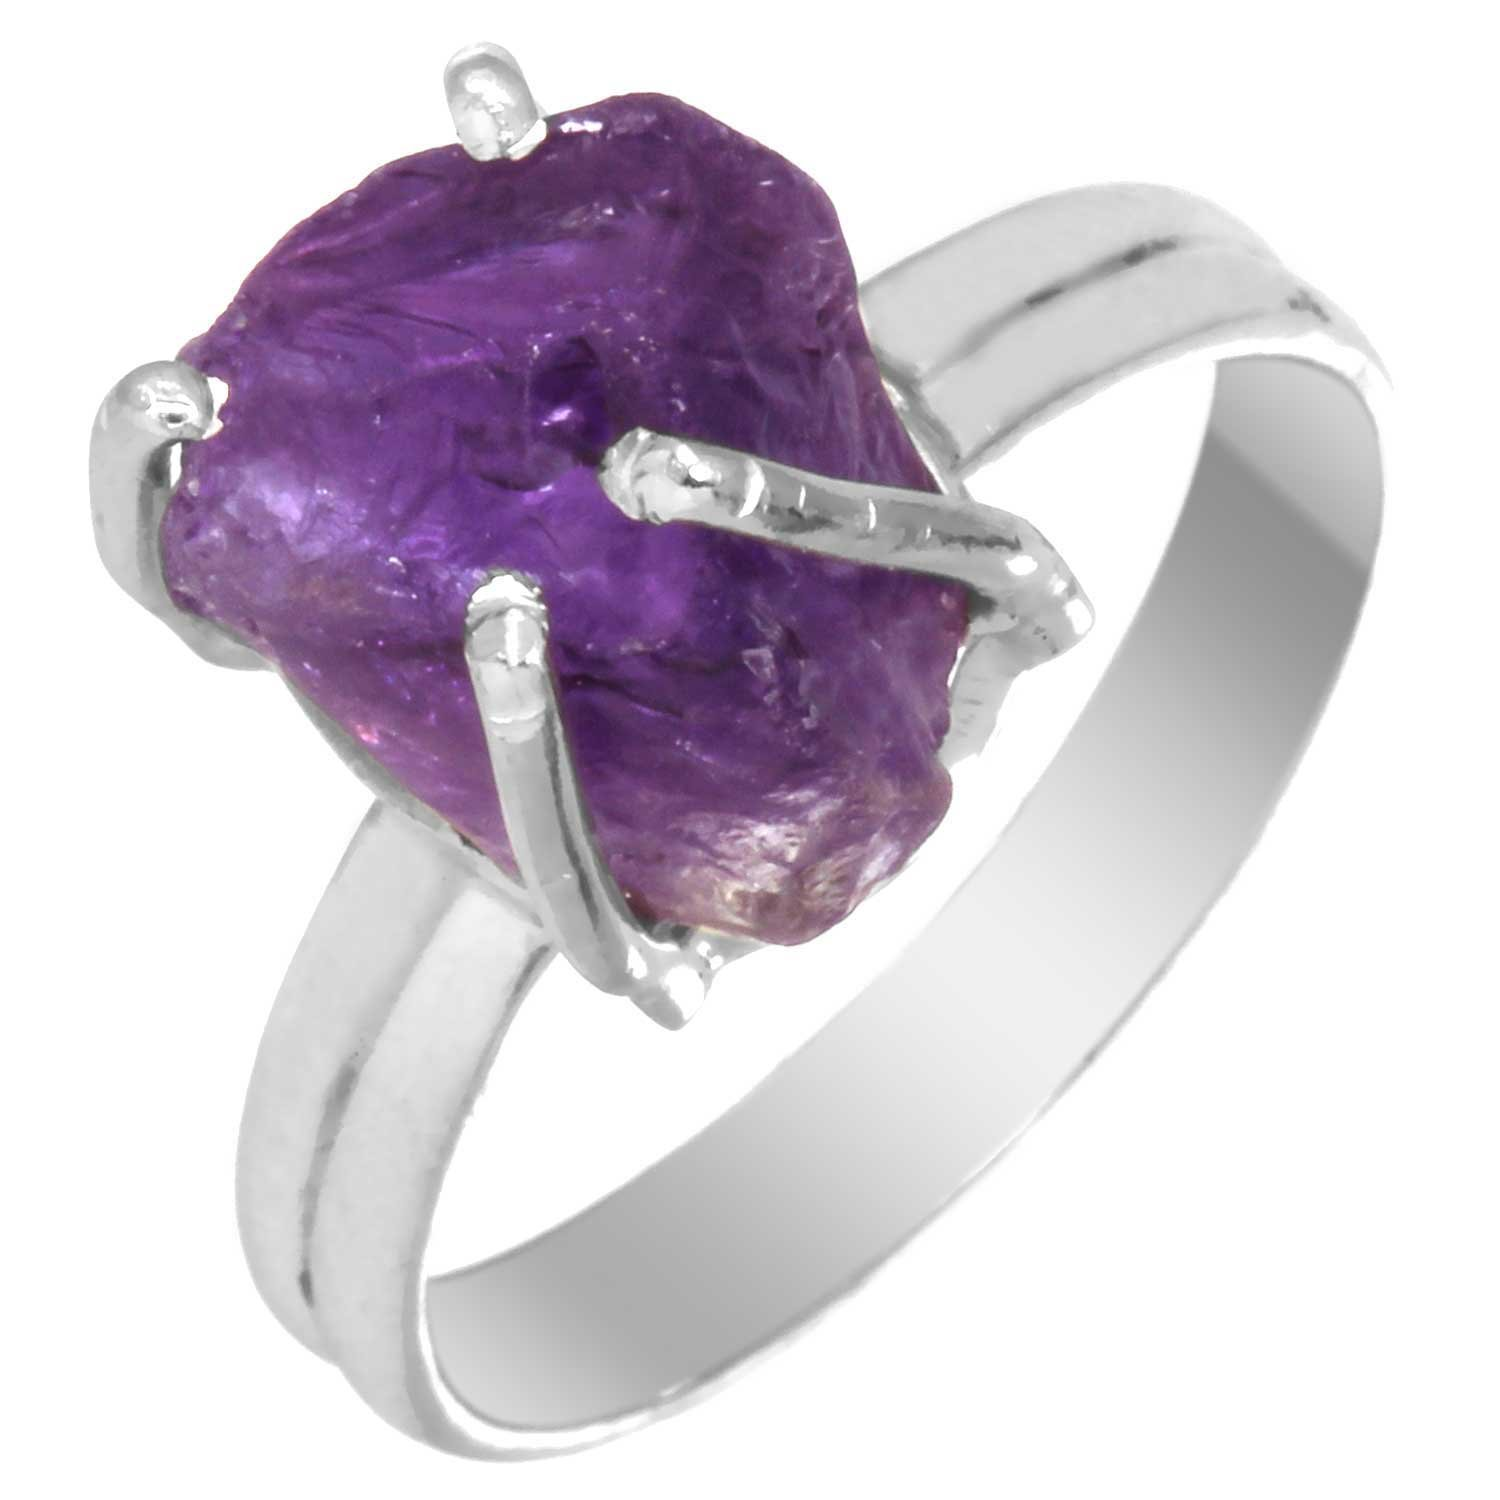 Solid 925 Sterling Silver Jewelry Natural Amethyst Rough Gemstone Ring